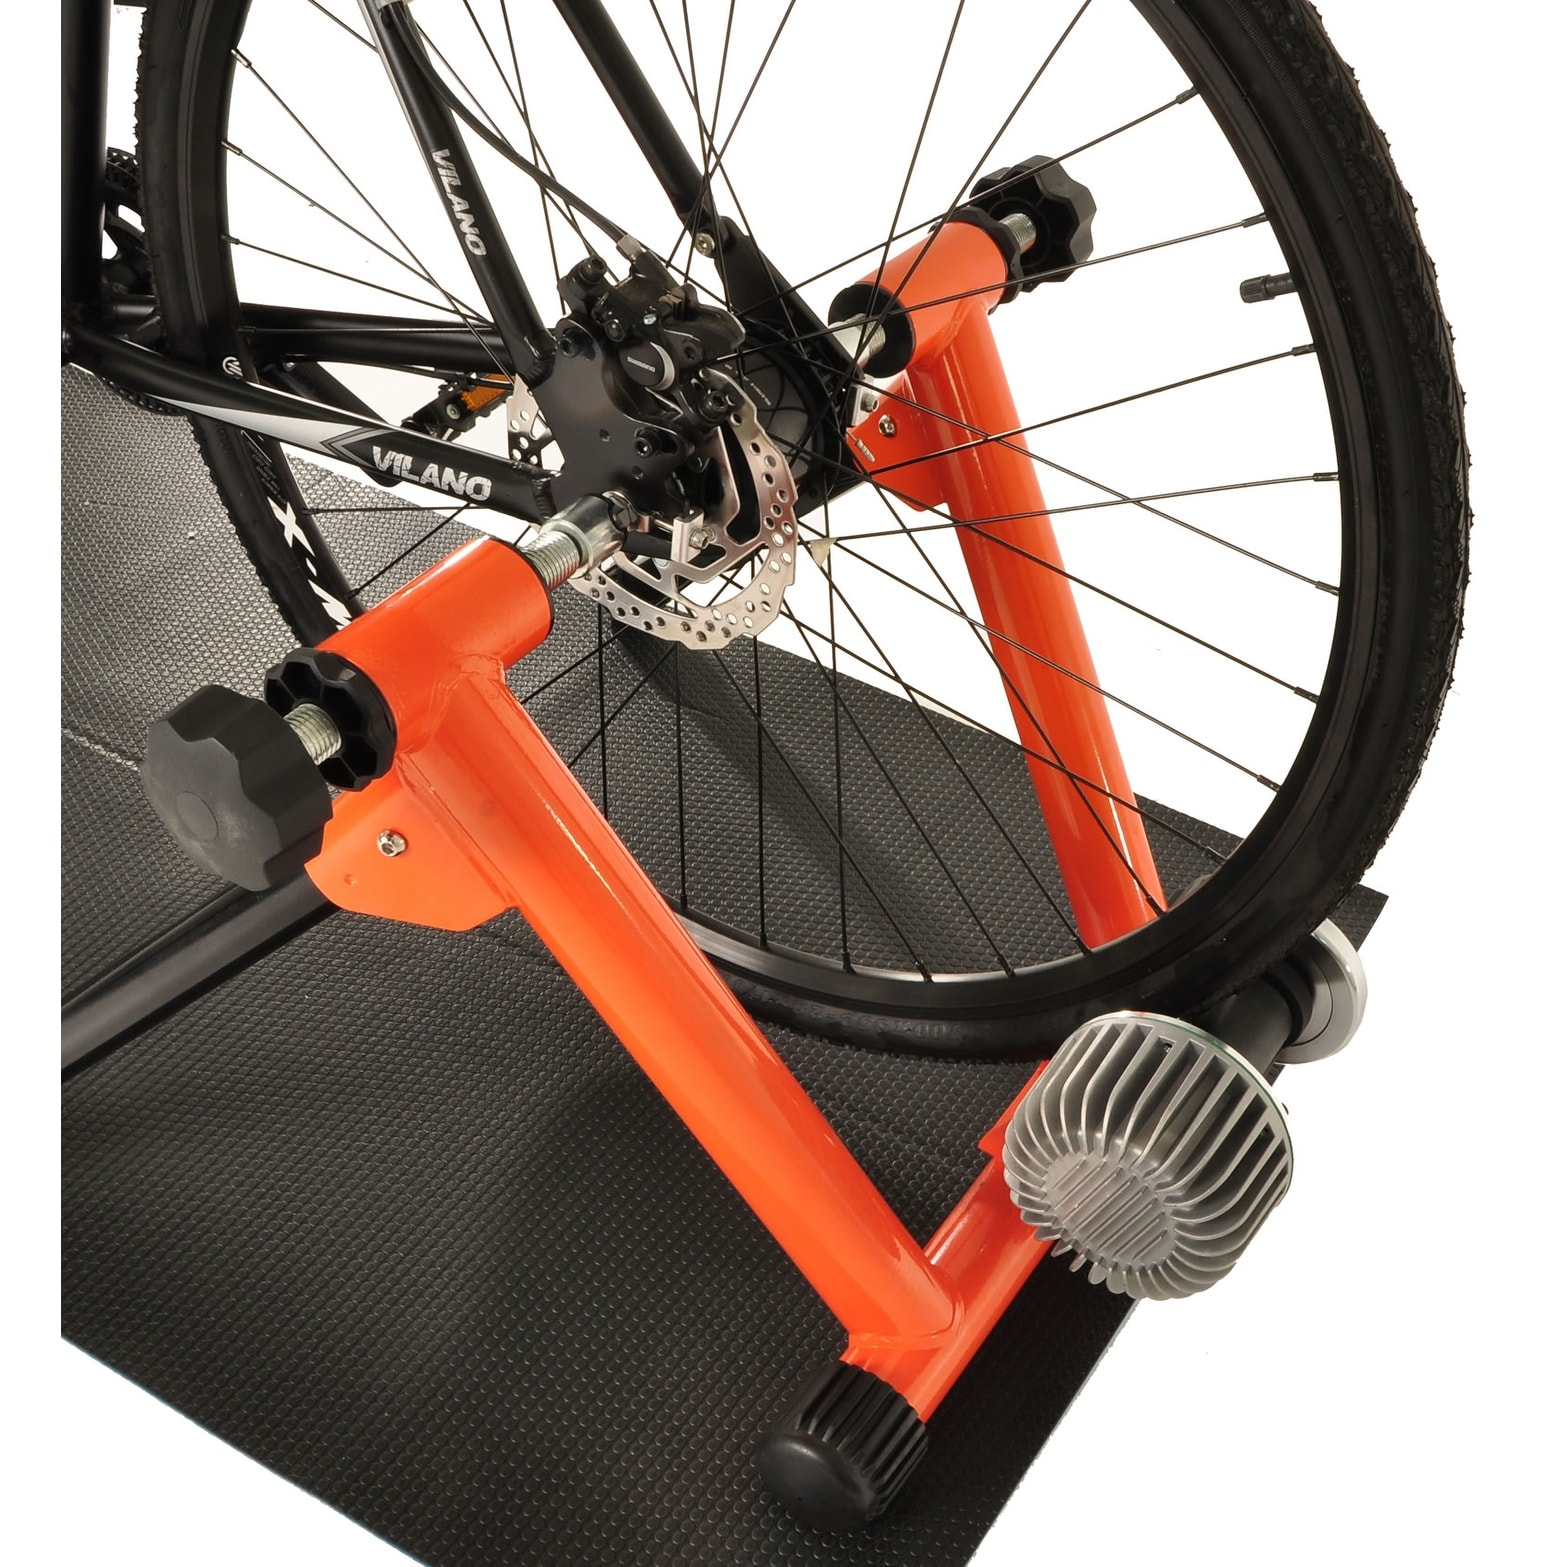 Fluid Bike Trainer >> Shop Conquer Fluid Bike Trainer Pro Indoor Bicycle Training Stand